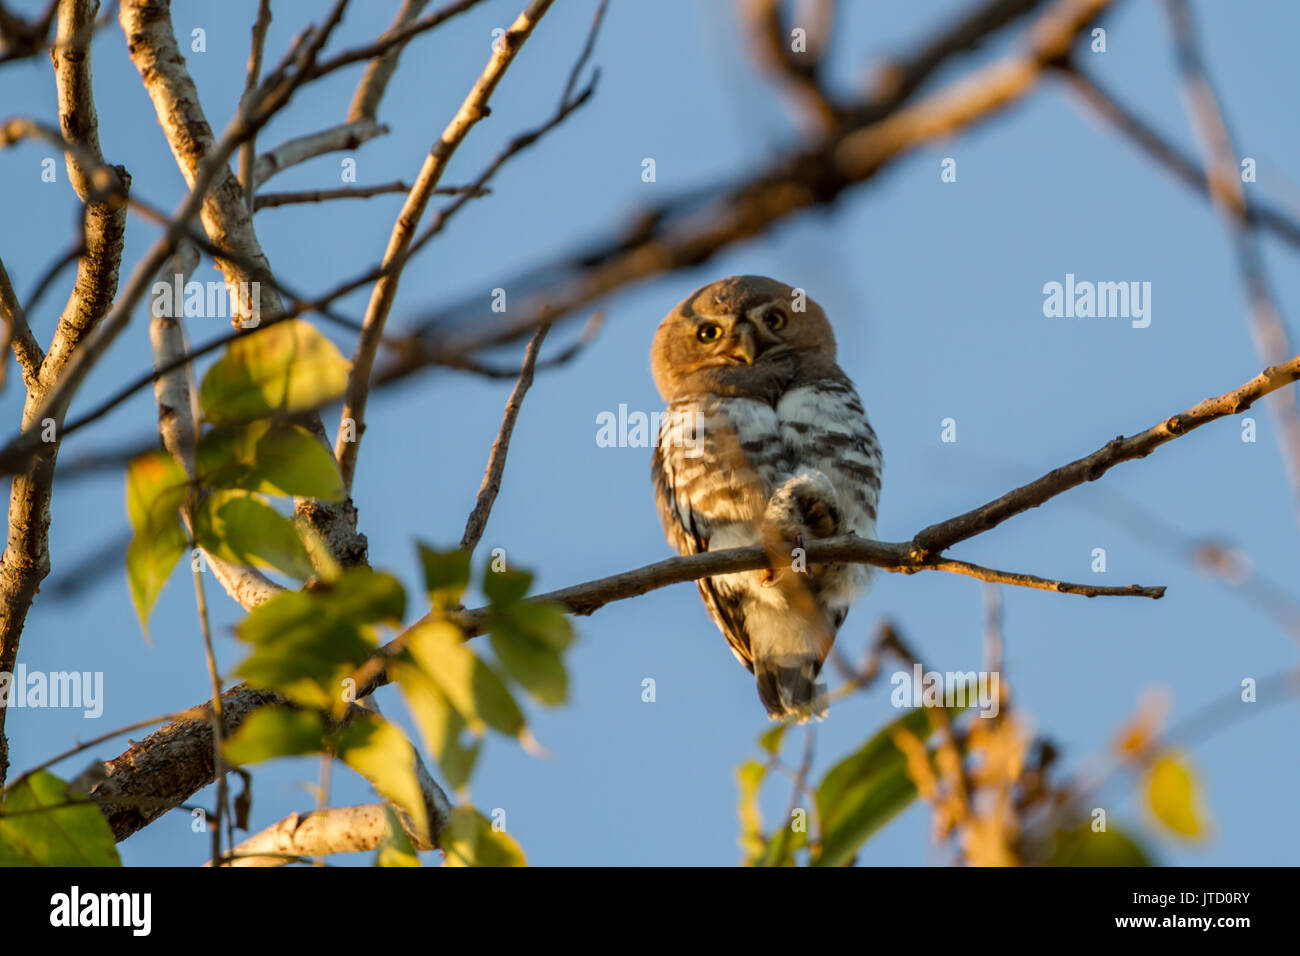 forest owlet (Athene blewitti) in Melghat Tiger Reserve - Stock Image